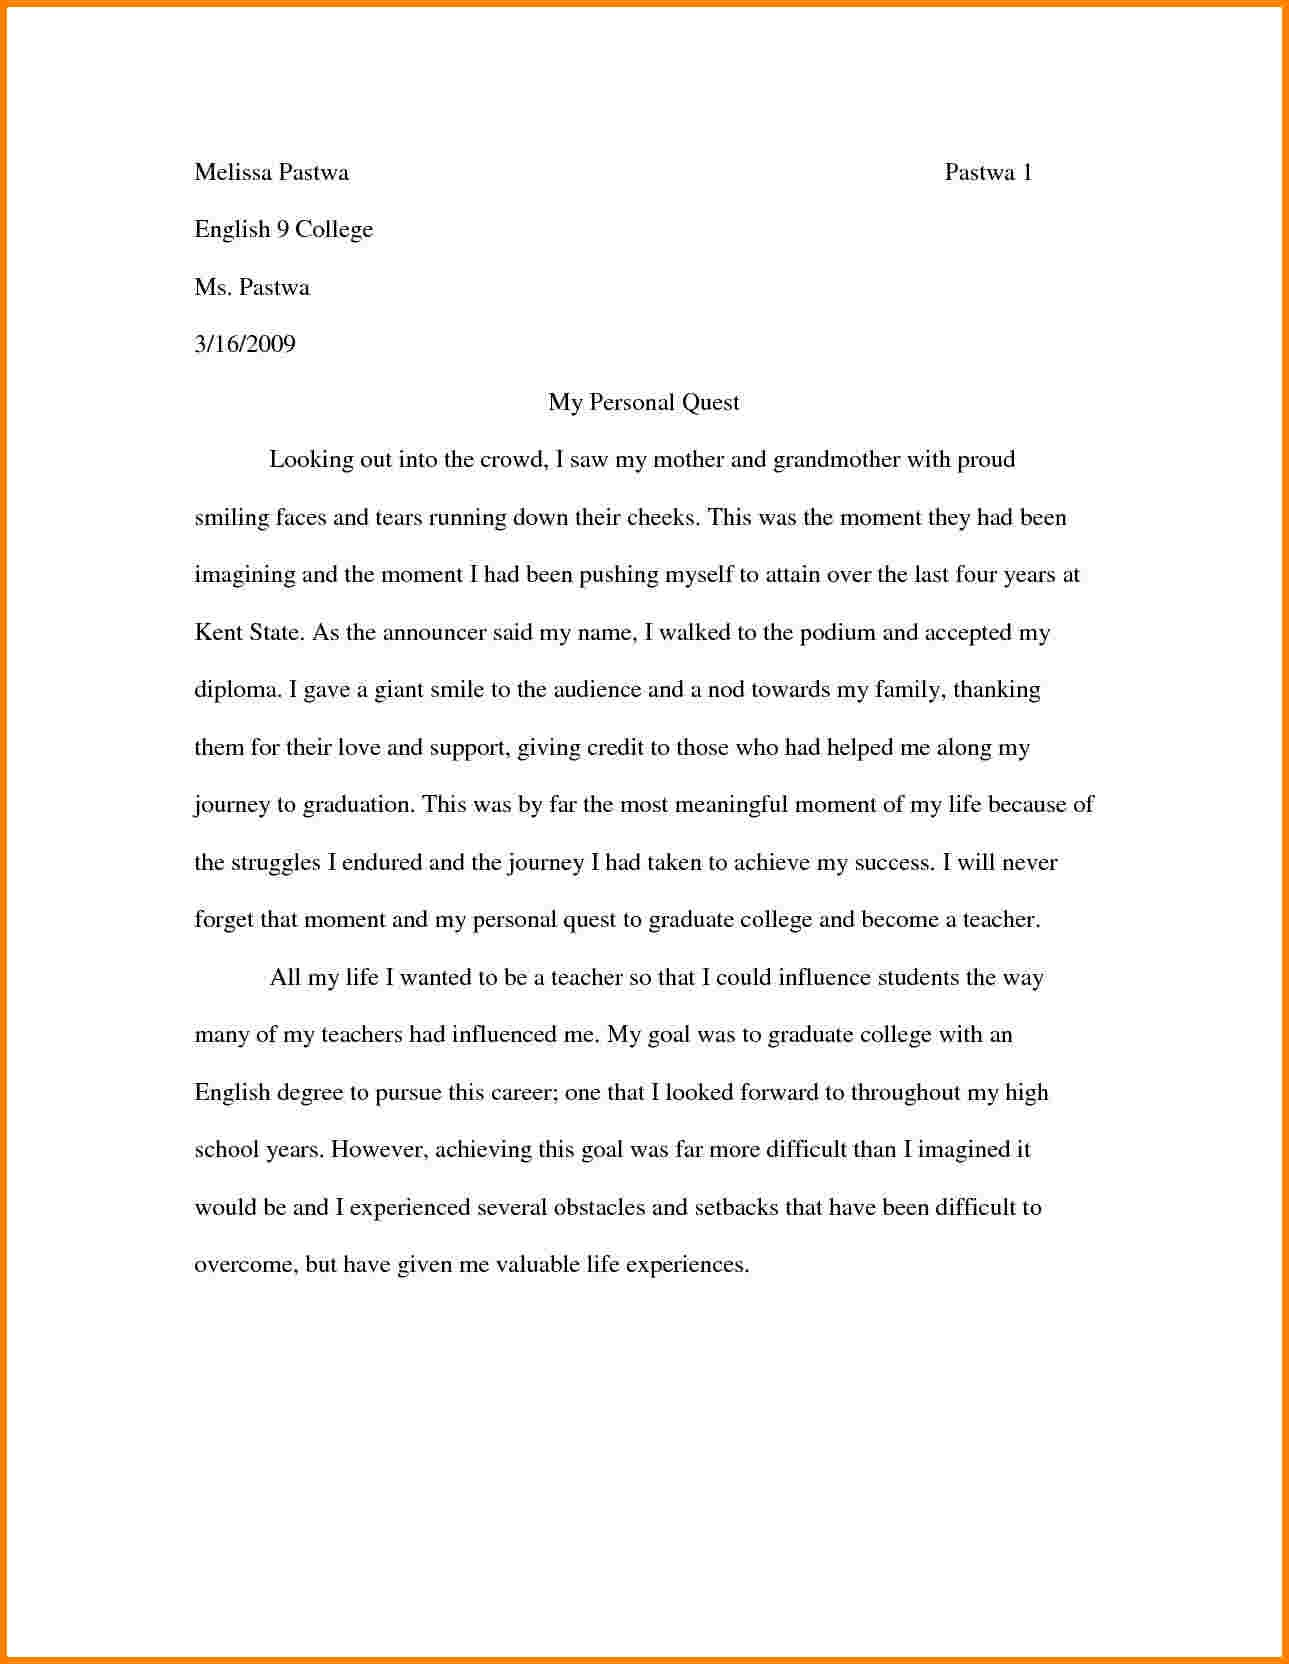 008 Essay Example Narrative With Dialogue Examples Selo Yogawithjo Co Awful Dialog Format Sample Full